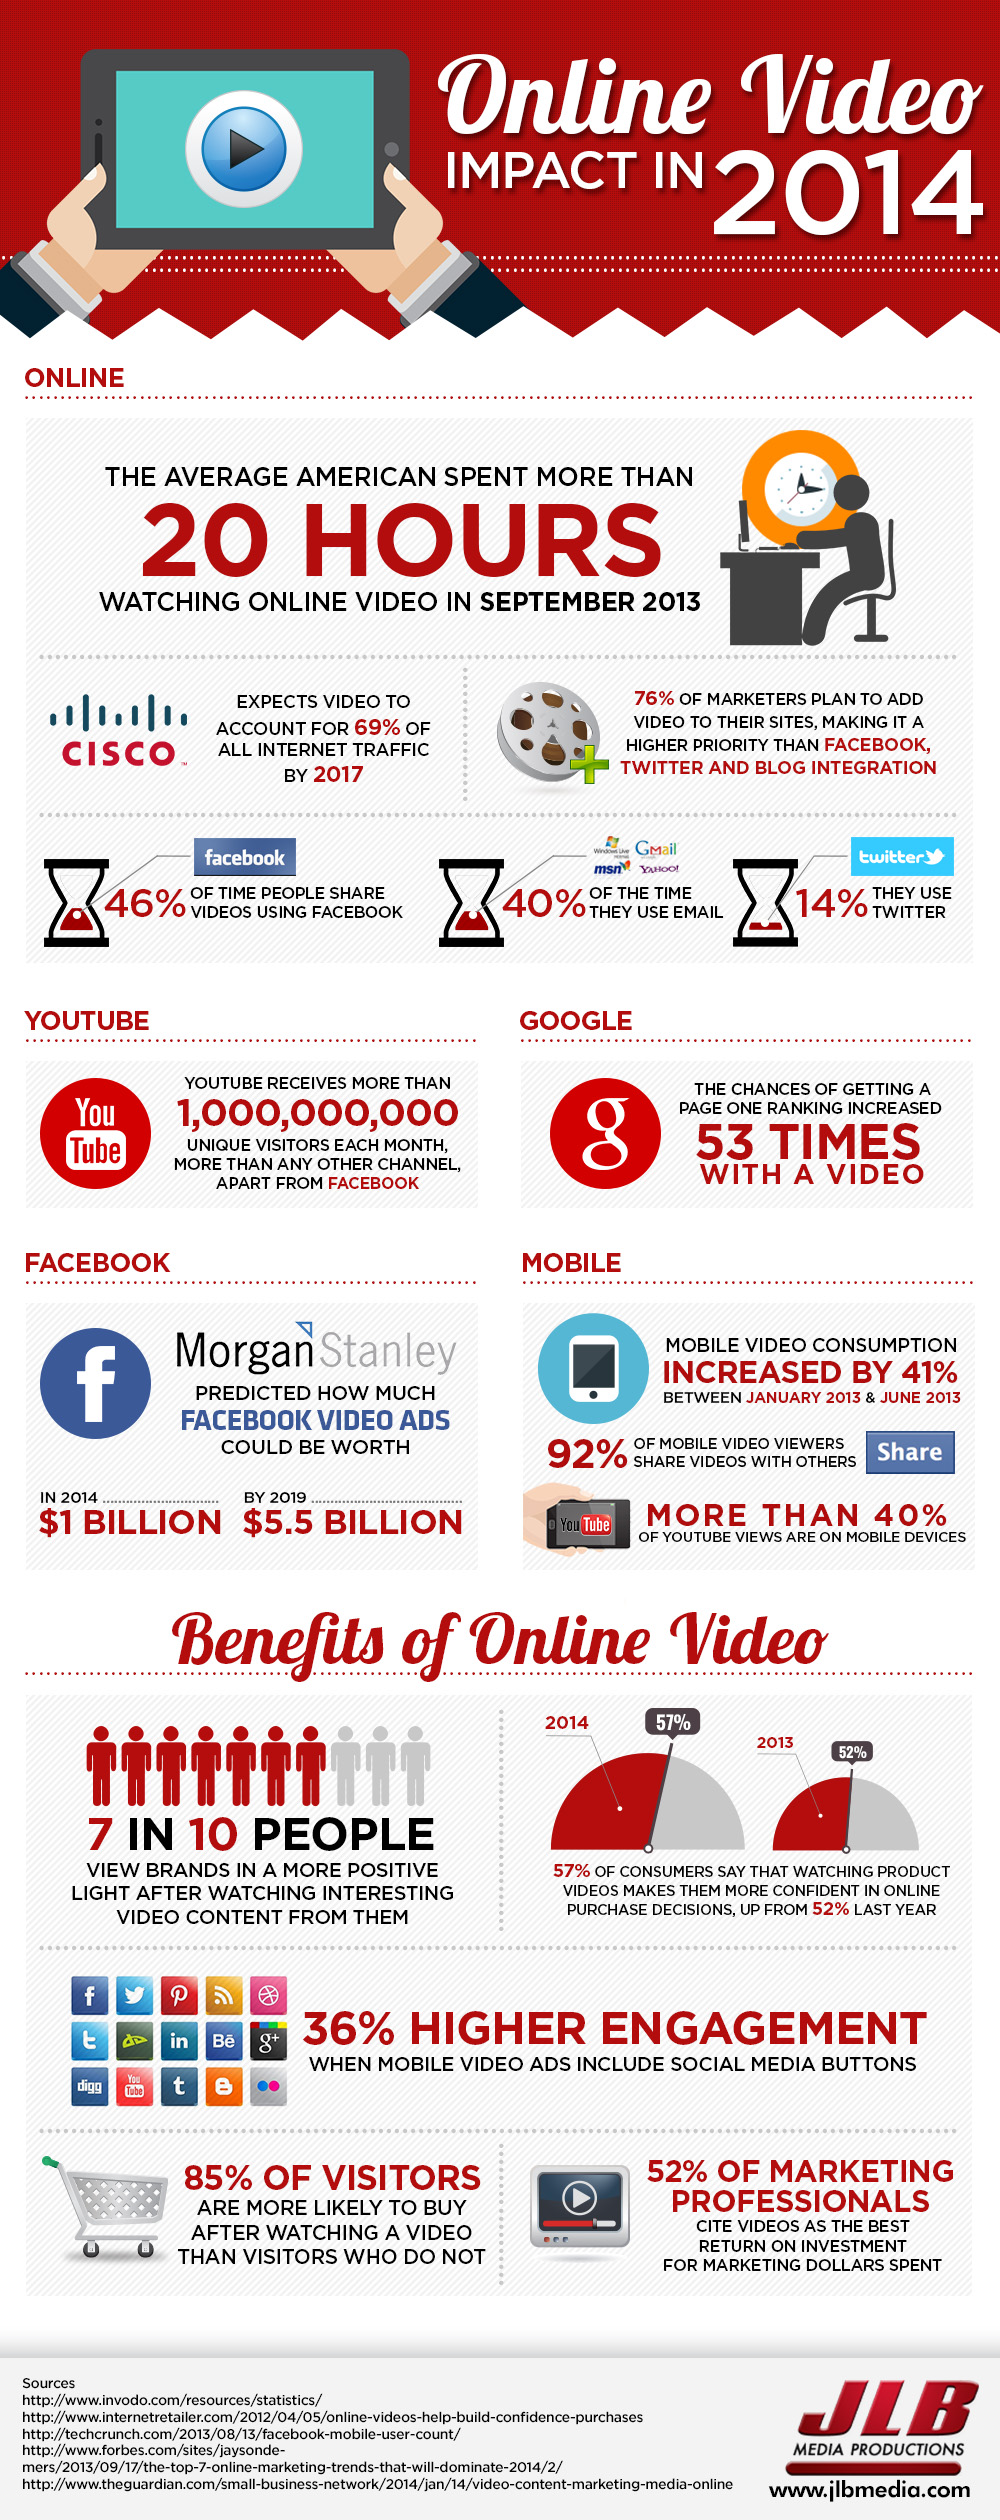 The Online Video Impact – Facts and Statistics - Infographic